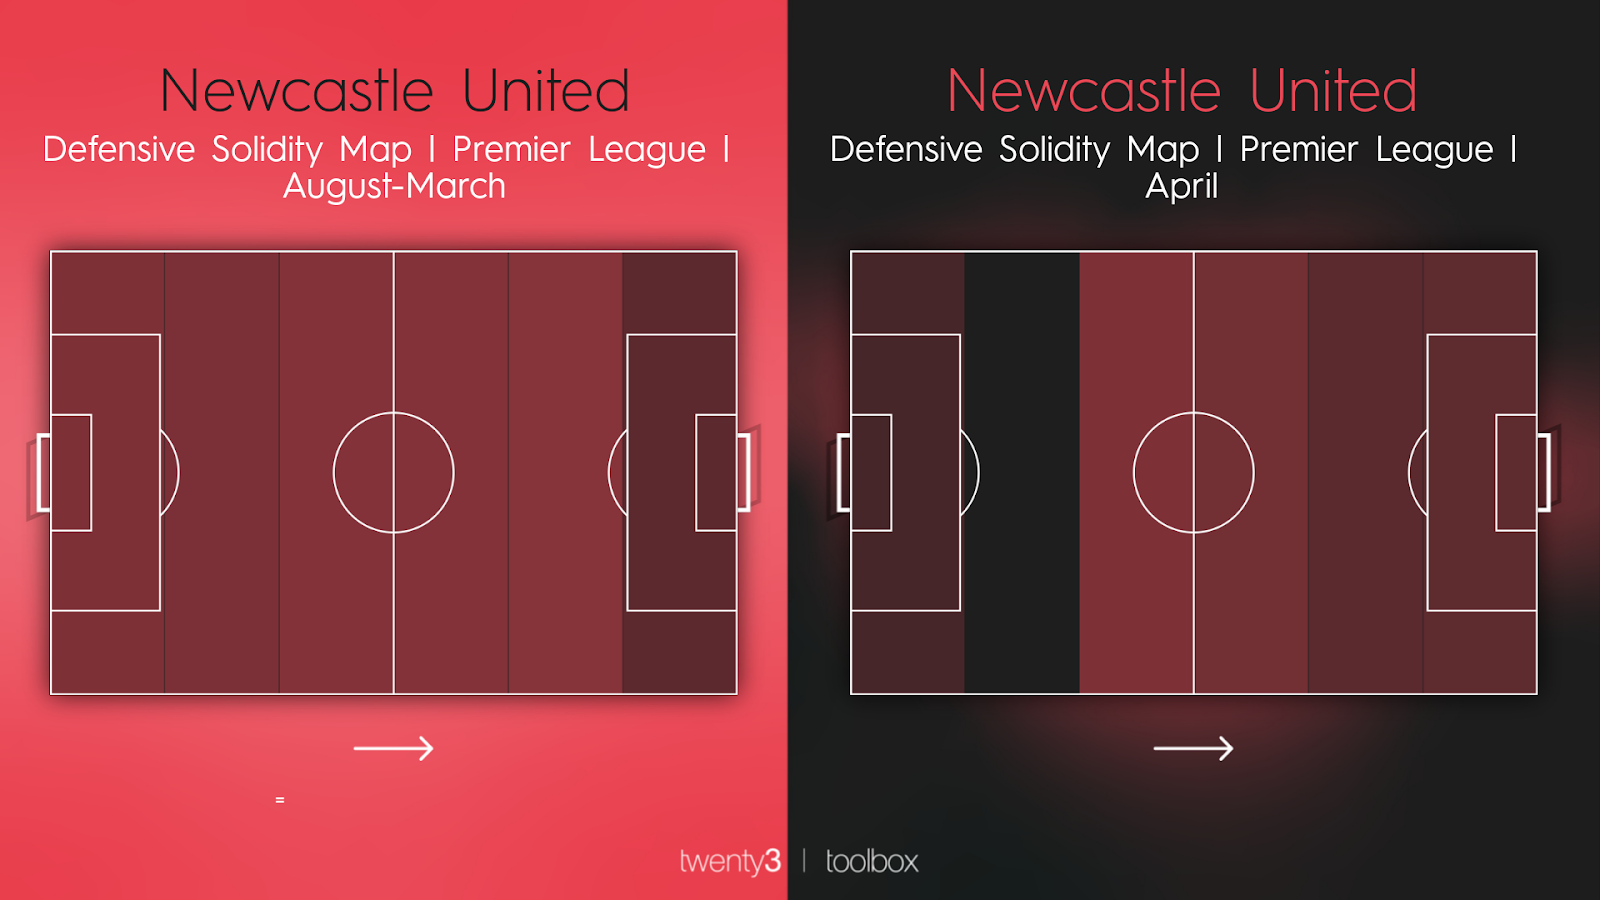 Newcastle United's defensive solidity map this season vs their defensive solidity map in April.